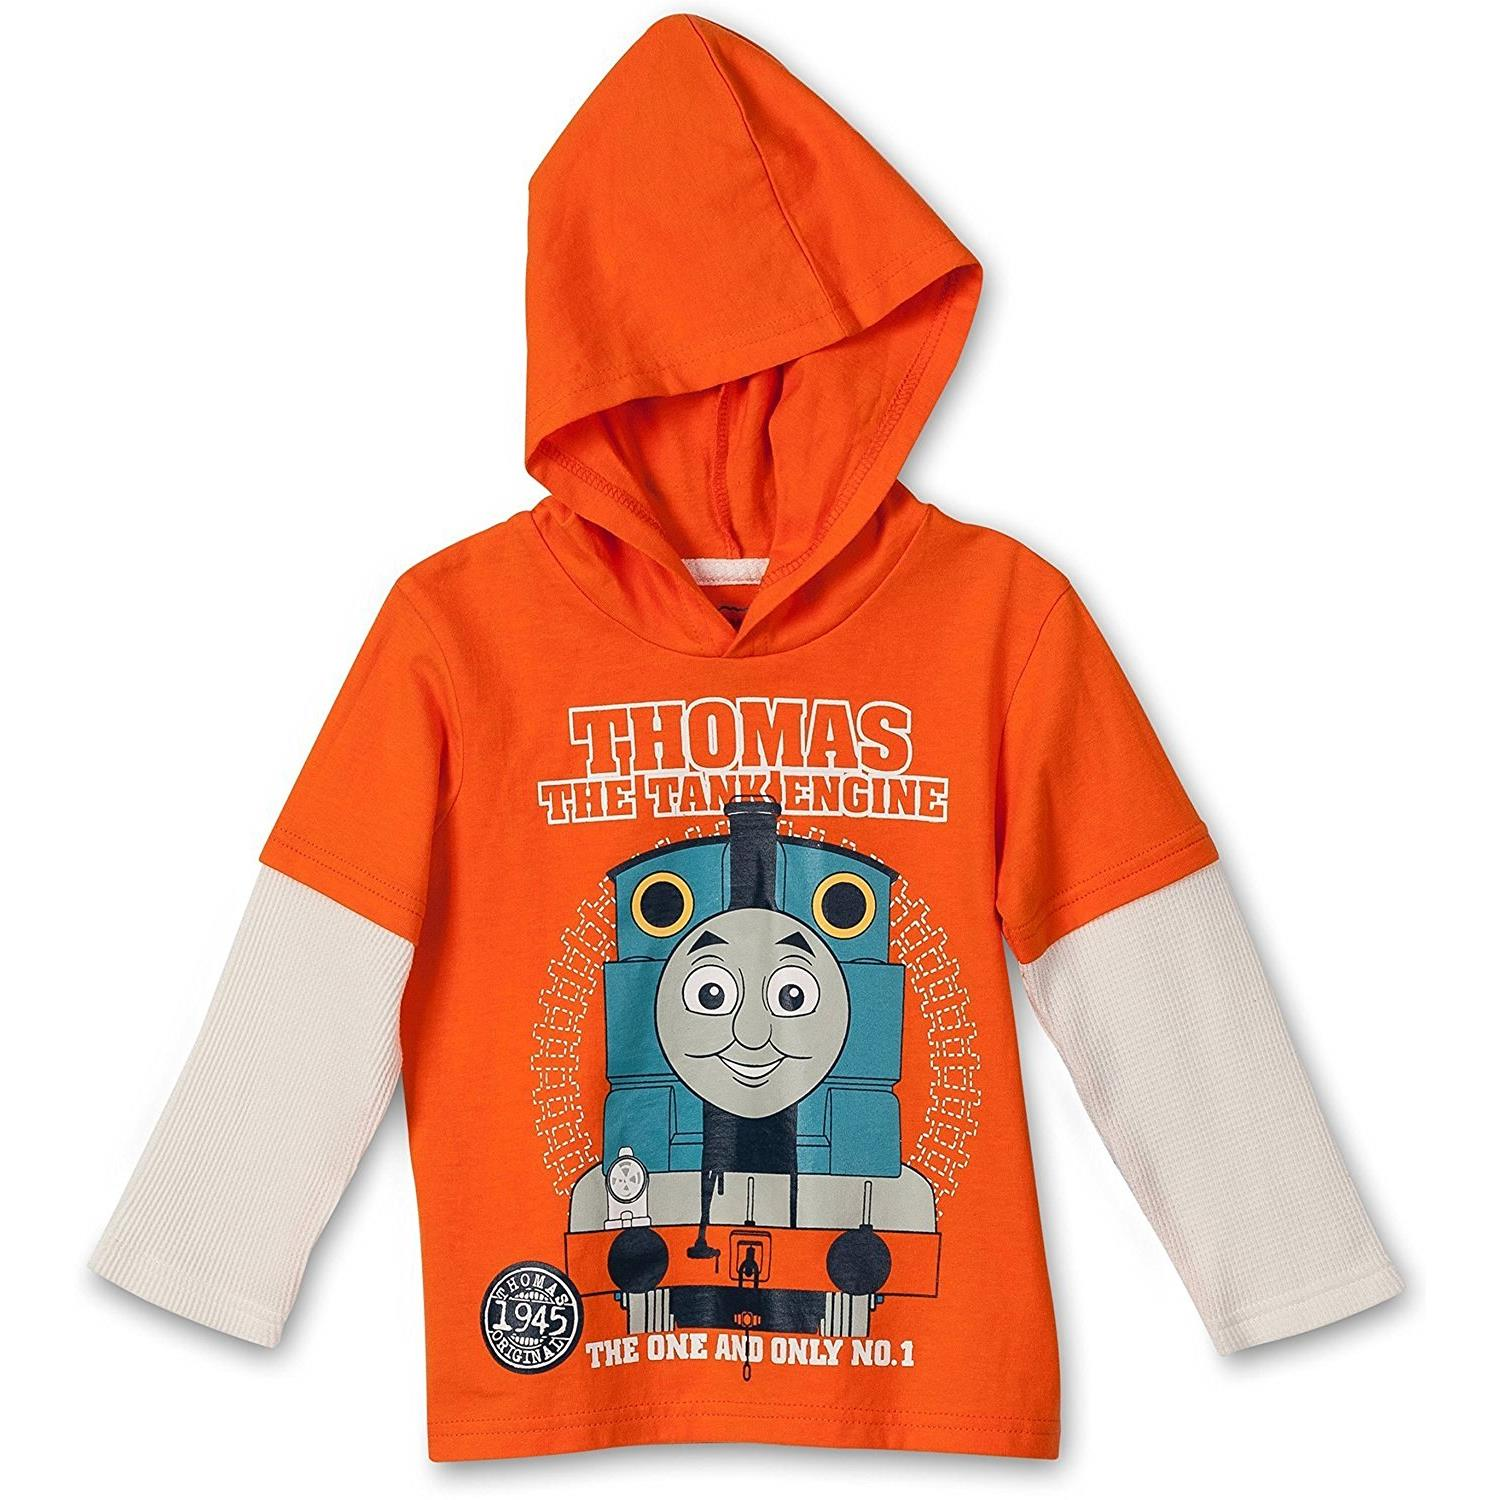 Thomas the Tank Engine Little Boys Hoodie/Sweatshirt, Toddler Sizes 2T-4T